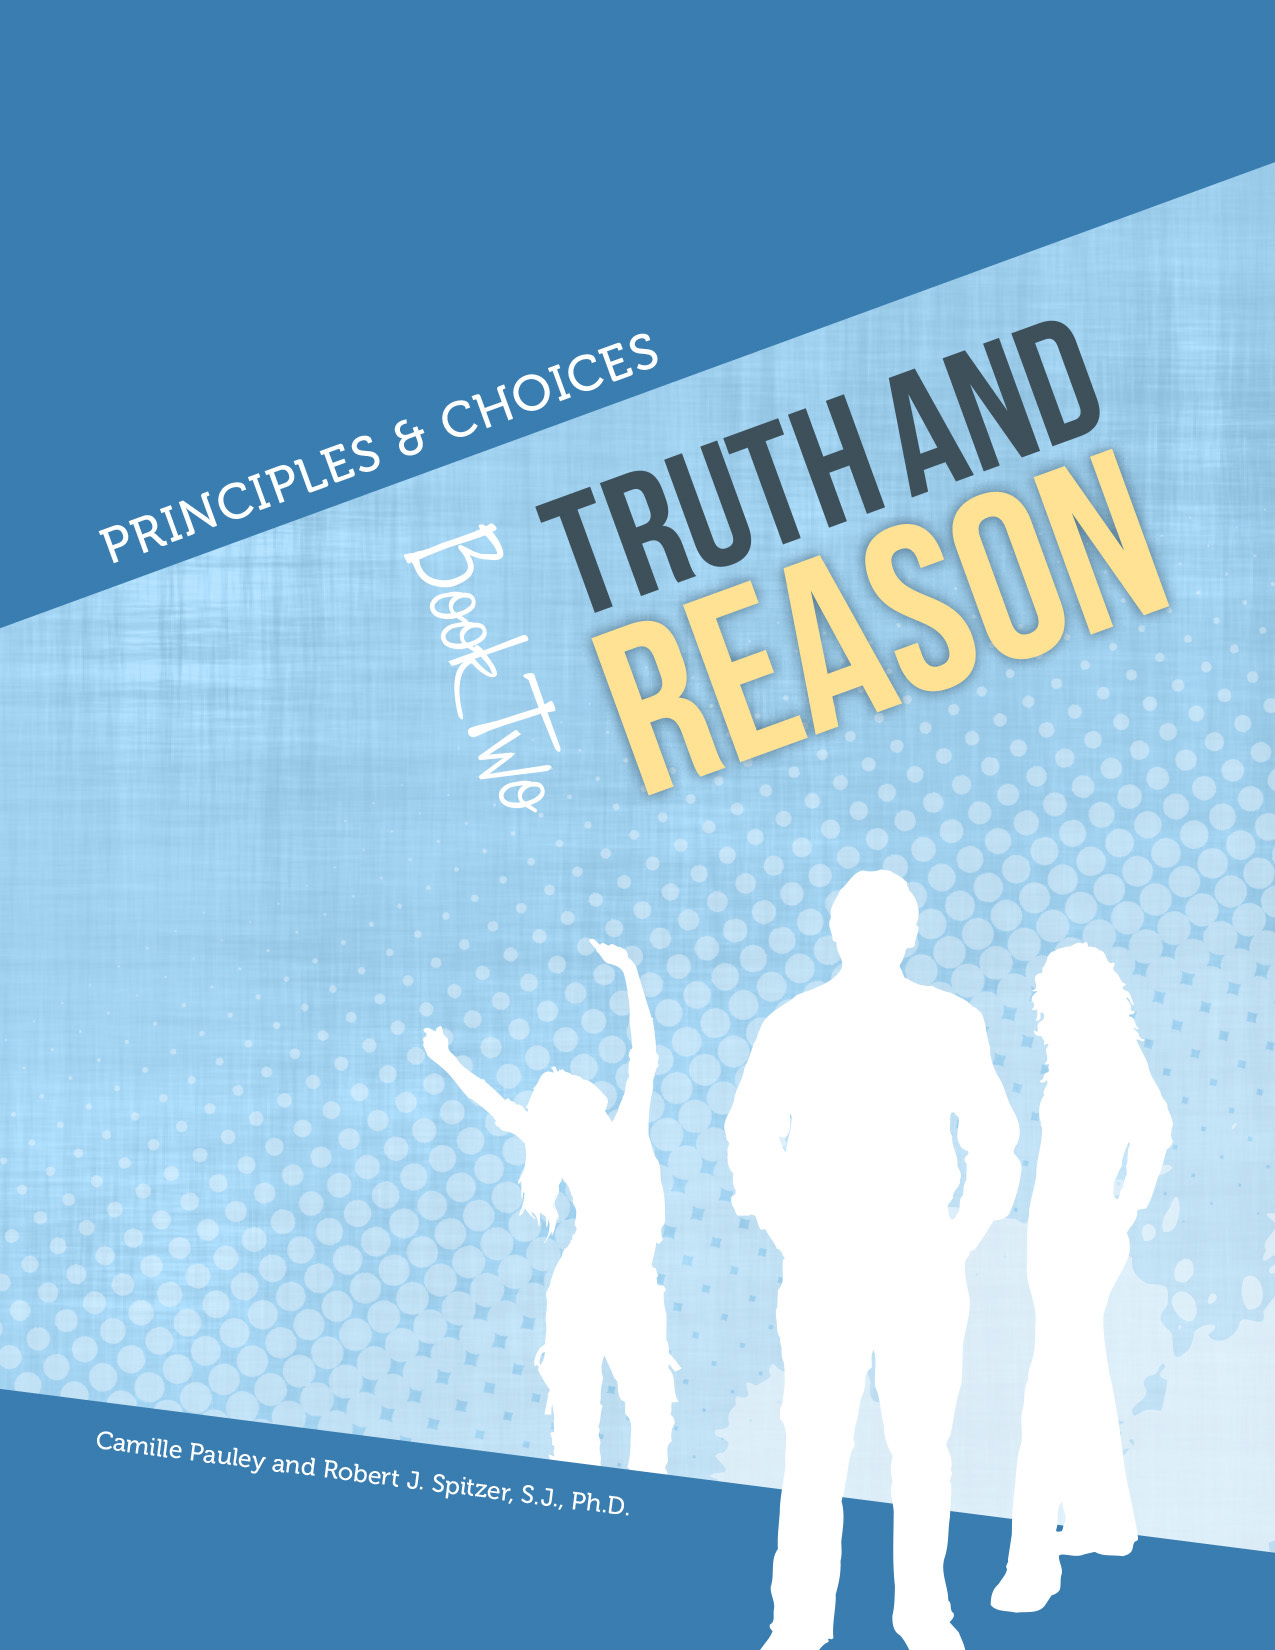 Principles & Choices 2 – Truth and Reason